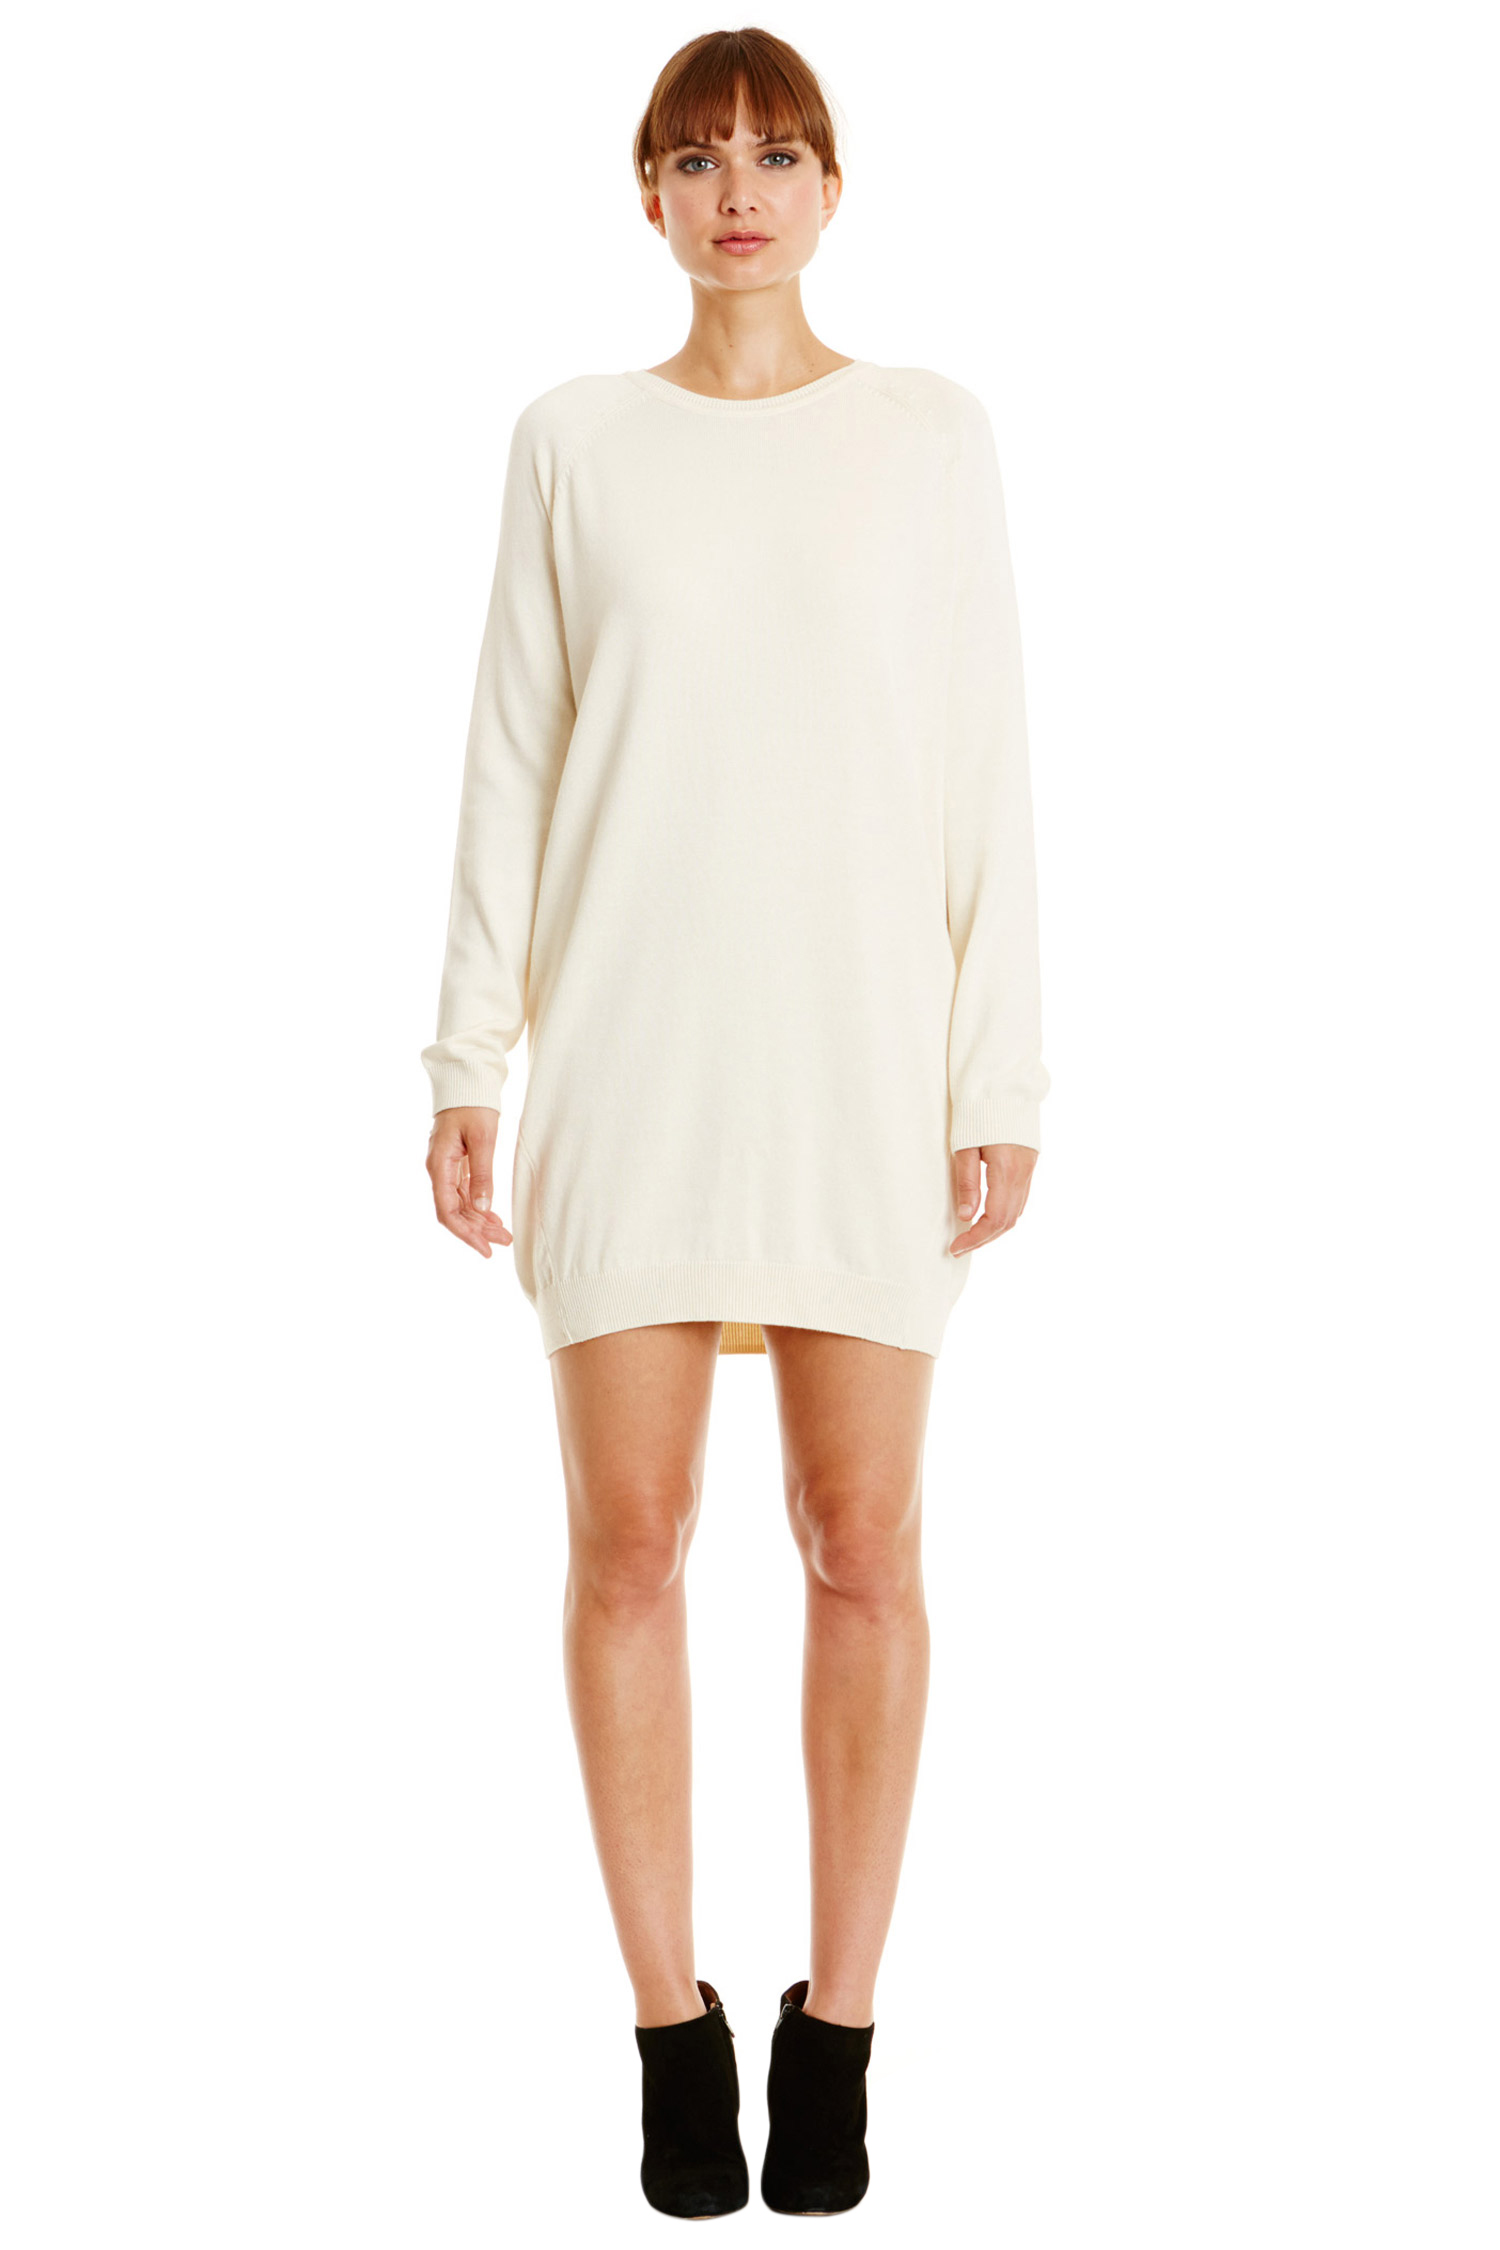 keisha knitted dress in winter white ANRRTDF